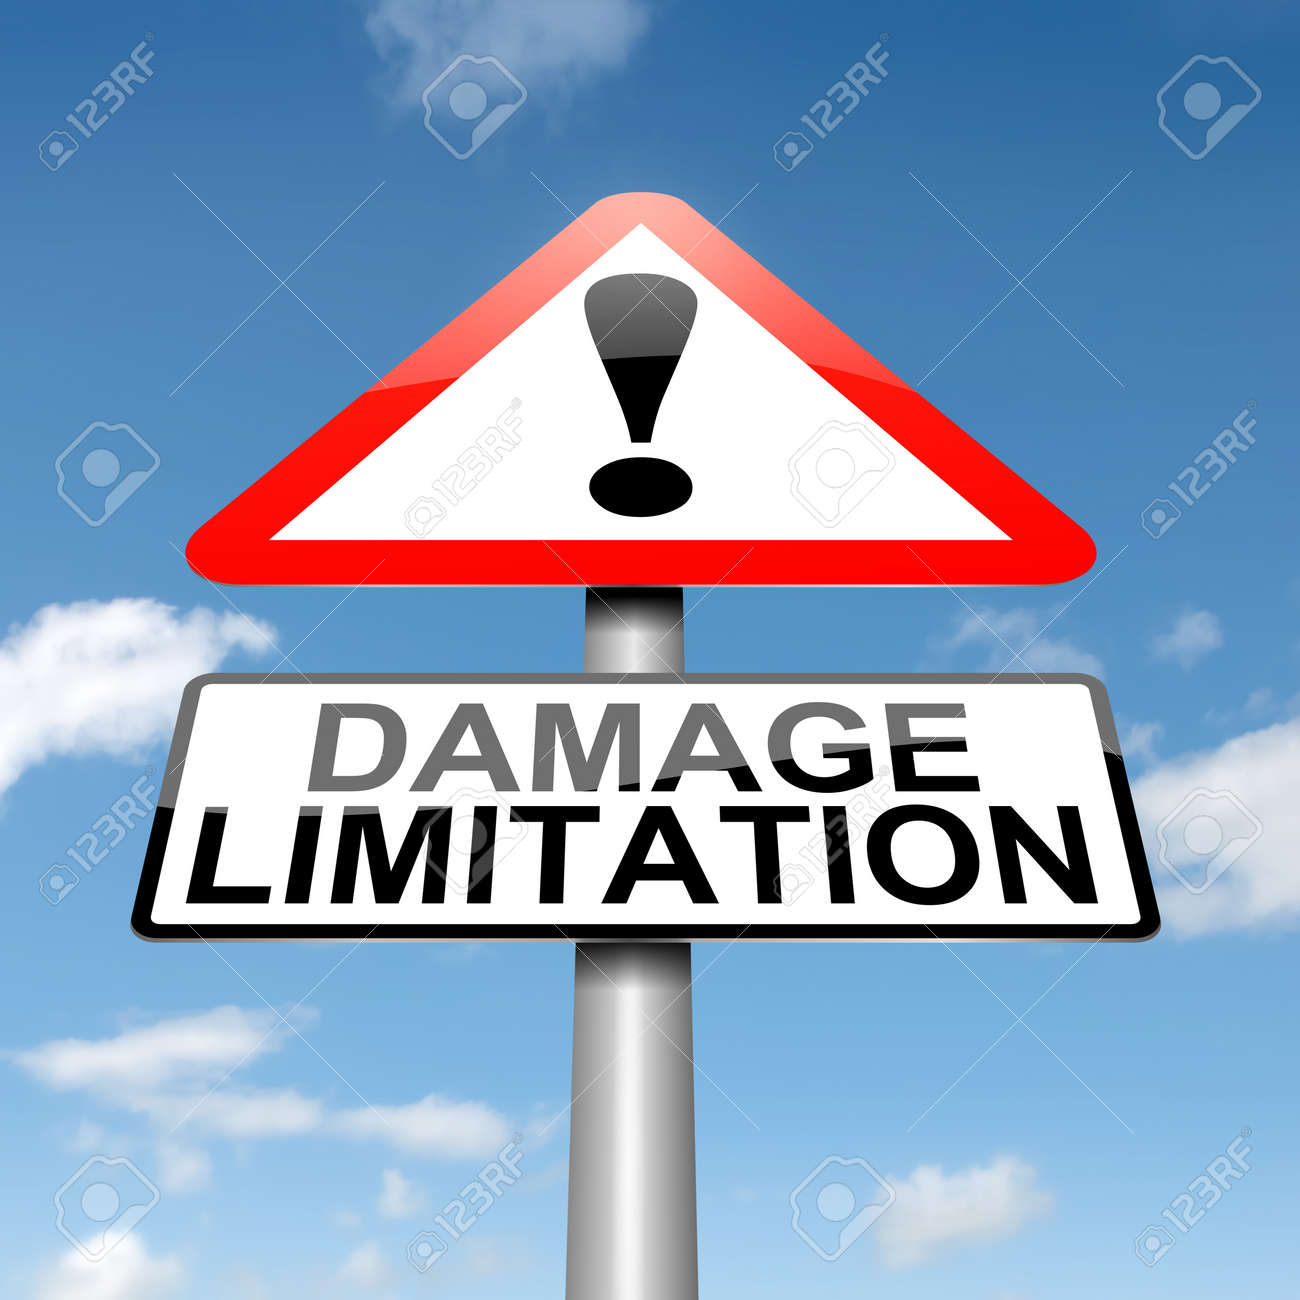 Illustration depicting a roadsign with a damage liability concept. Blue sky background. Stock Photo - 15815804